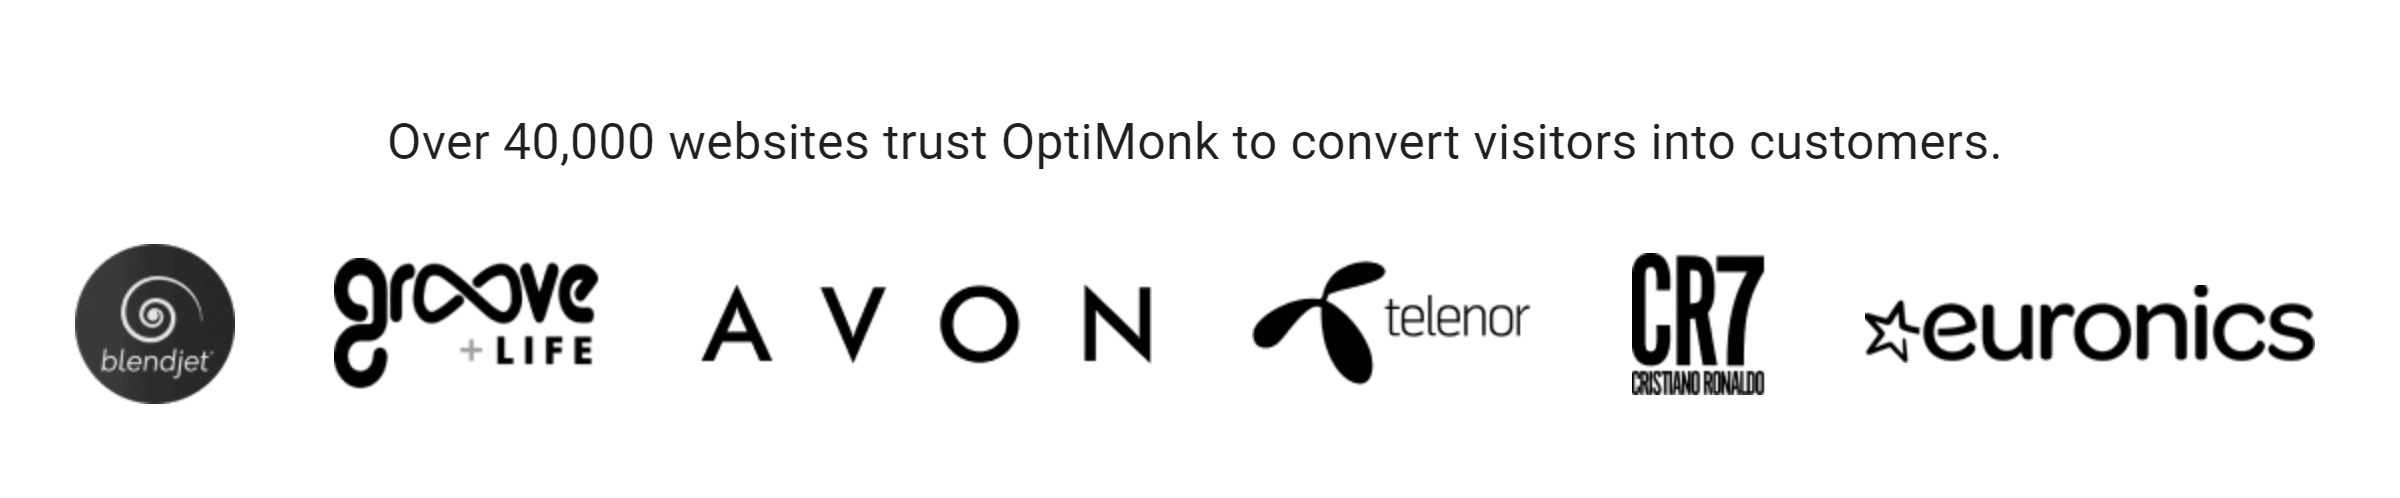 Optimonk reviews by customer